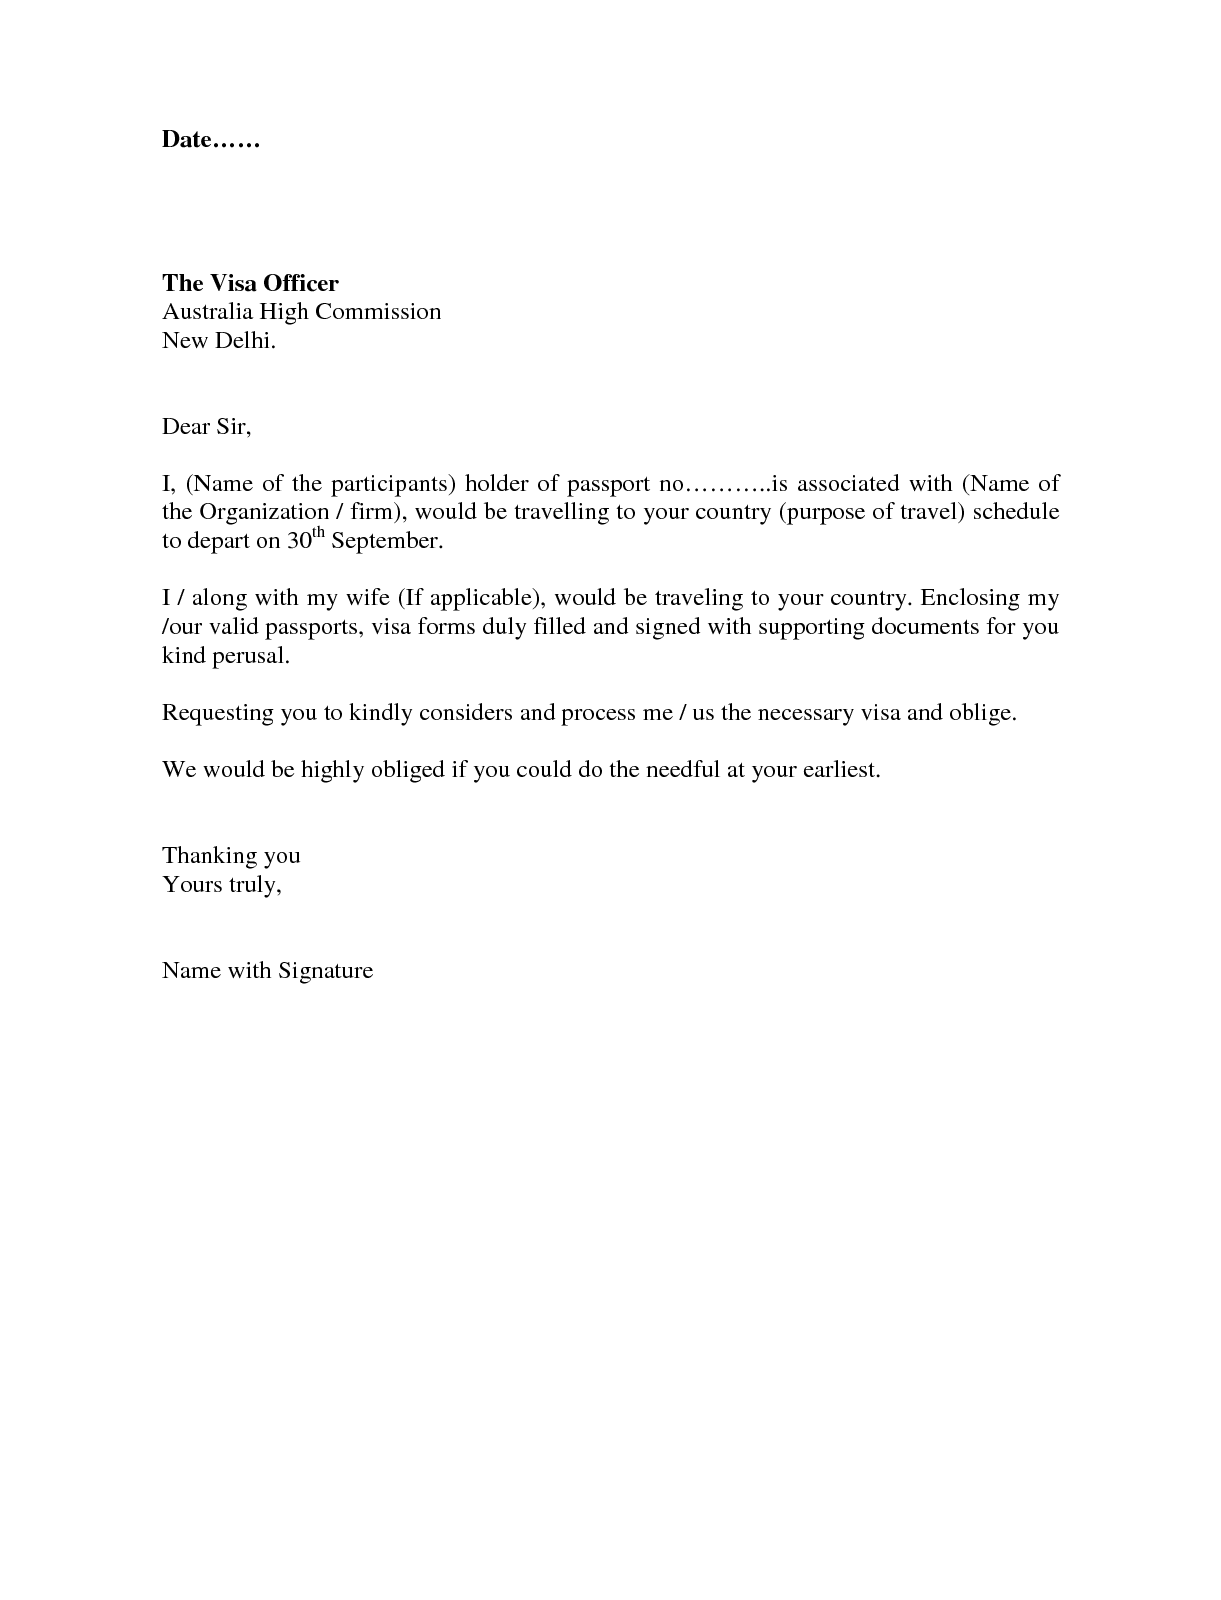 Letter sample covering for colombia visa update indians letter sample covering for colombia visa update indians application format india launching resume reference page spiritdancerdesigns Choice Image